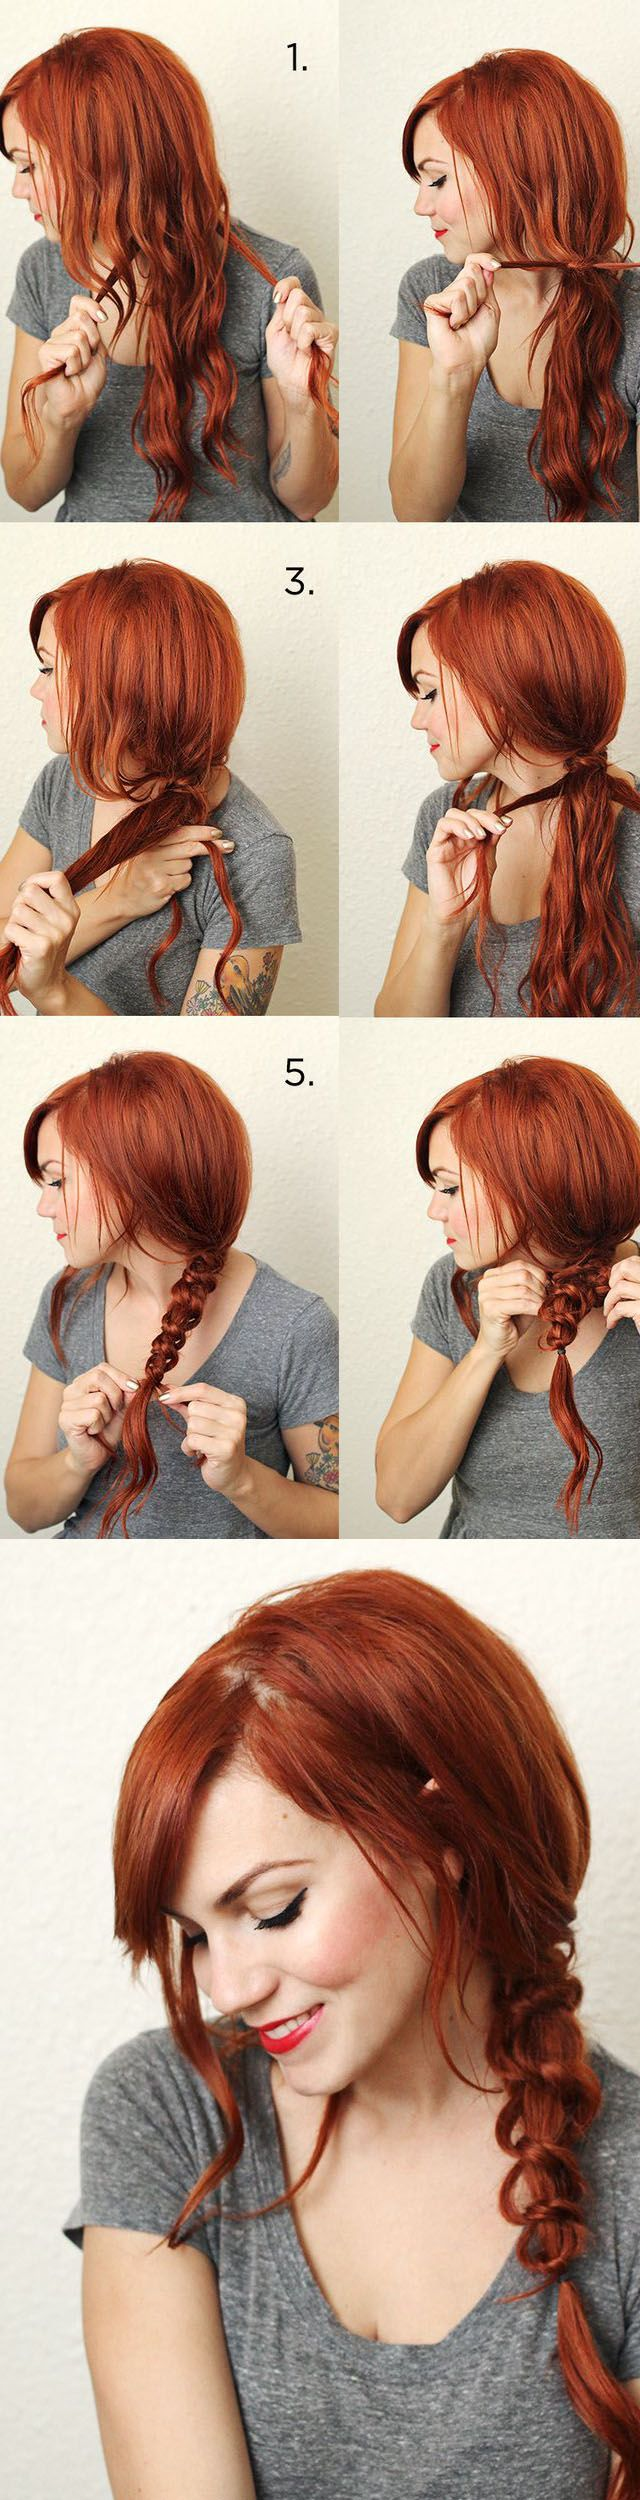 Strange 1000 Ideas About Messy Braid Tutorials On Pinterest Messy Hairstyle Inspiration Daily Dogsangcom